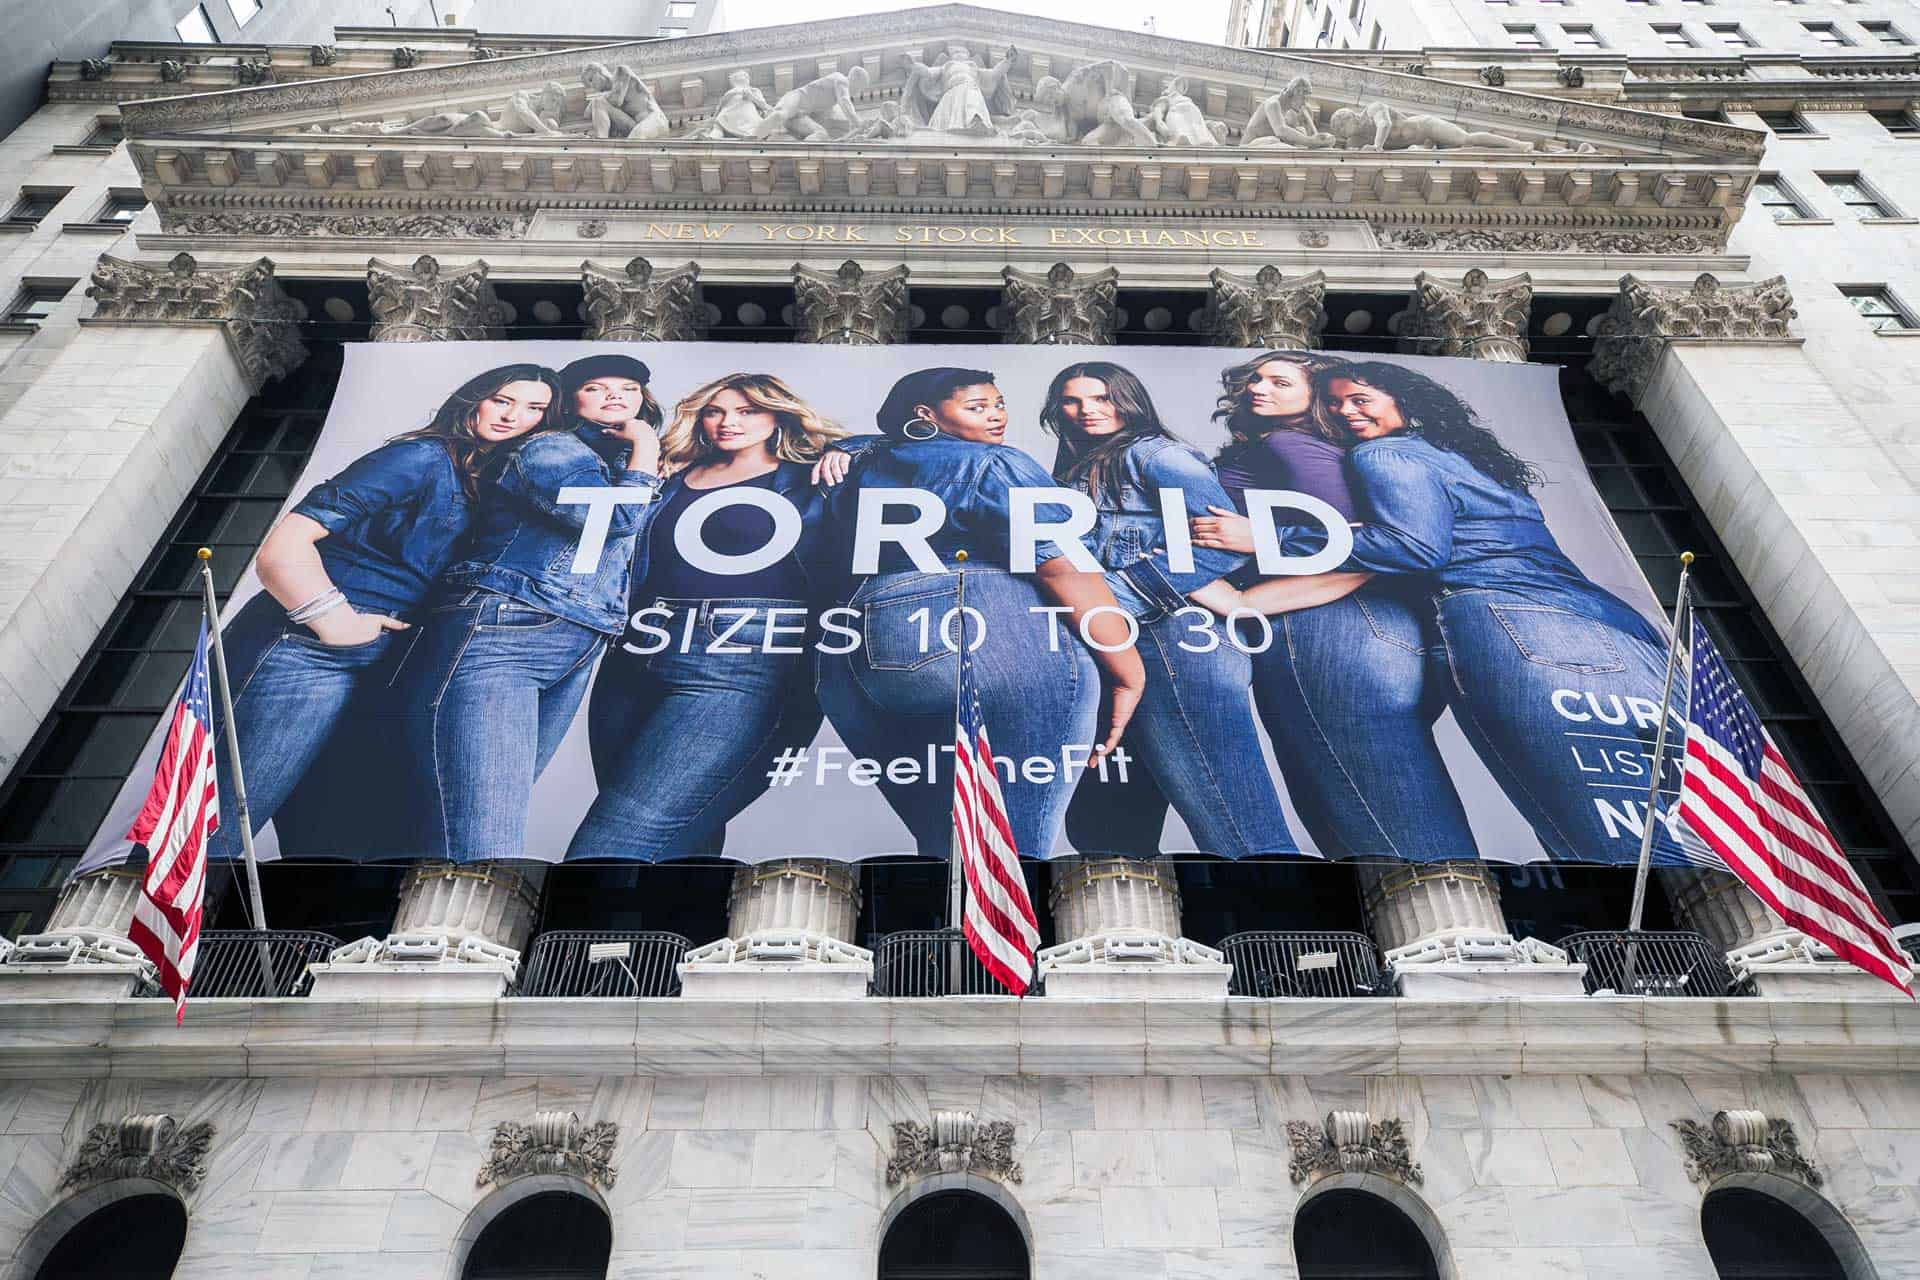 National Flag and Display produces the Custom Banners at The New York Stock Exchange, for the Initial Public Offering of the Torrid Company.